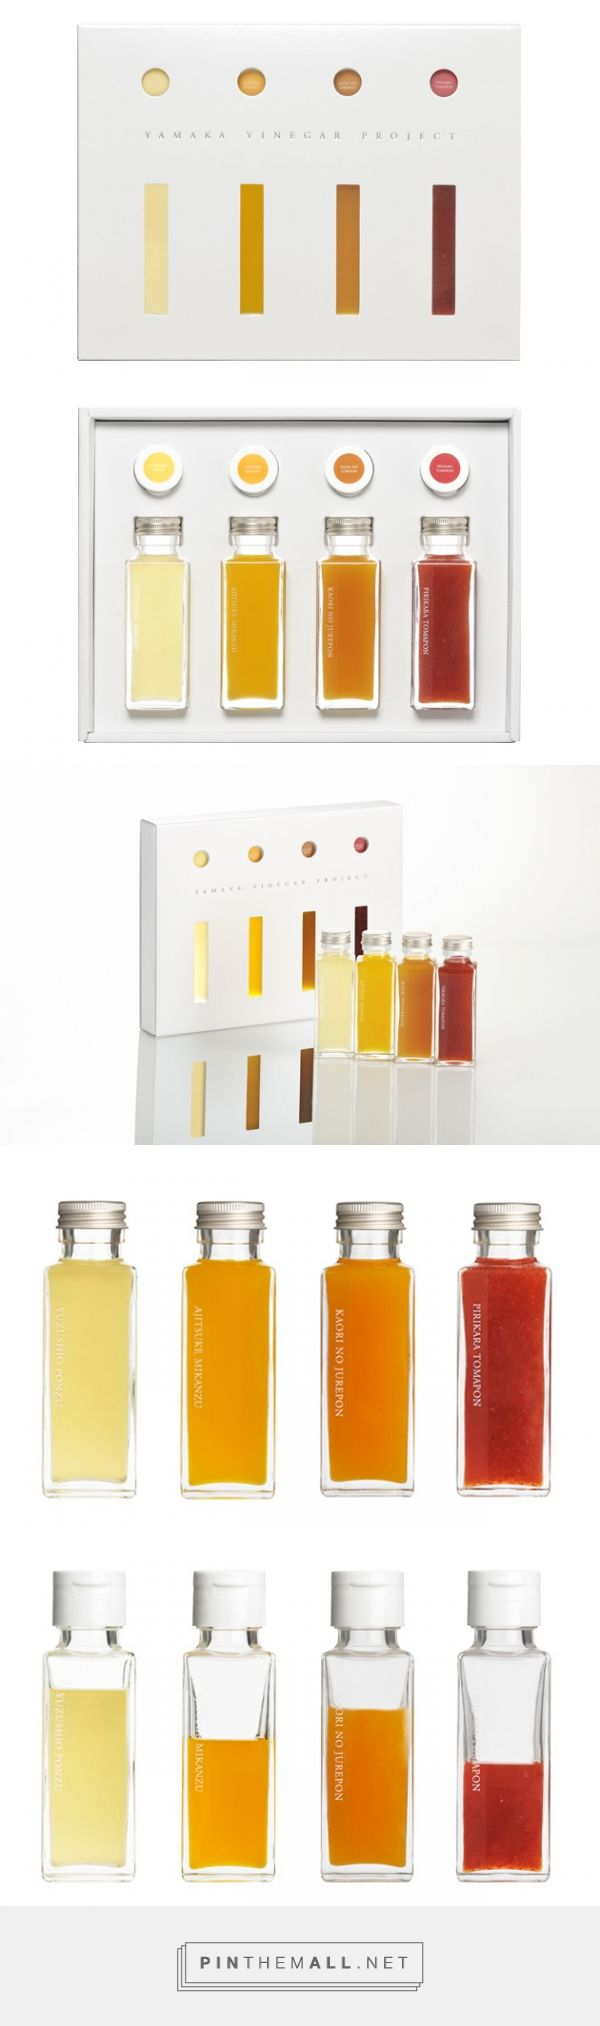 YAMAKA VINEGAR PROJECT via SHIROKURO curated by Packaging Diva PD. Just lovely packaging.